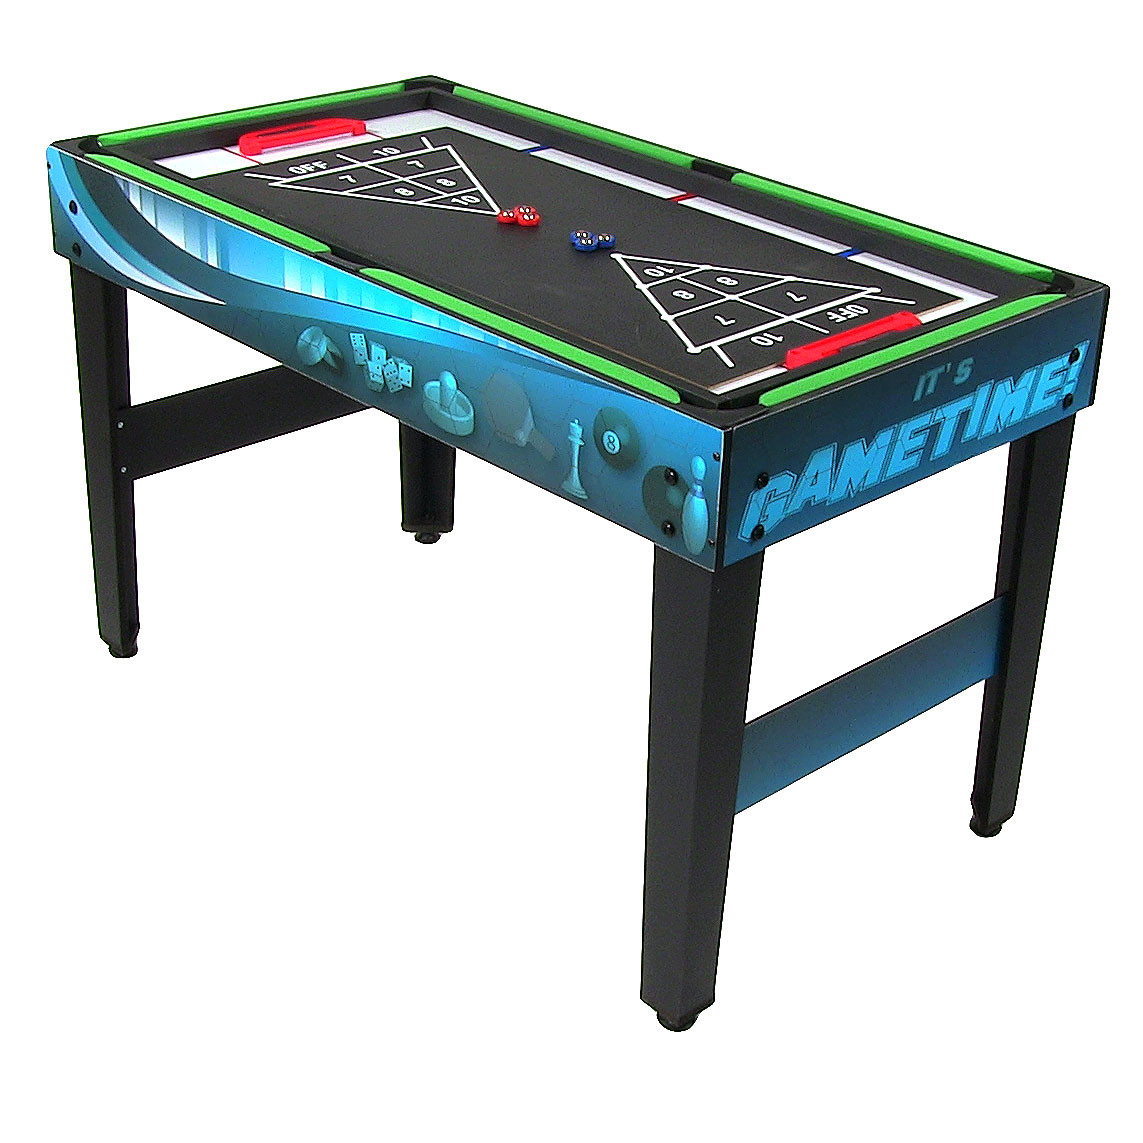 Sunnydaze 40 inch 10 in 1 multi game table for Supreme 99 table game